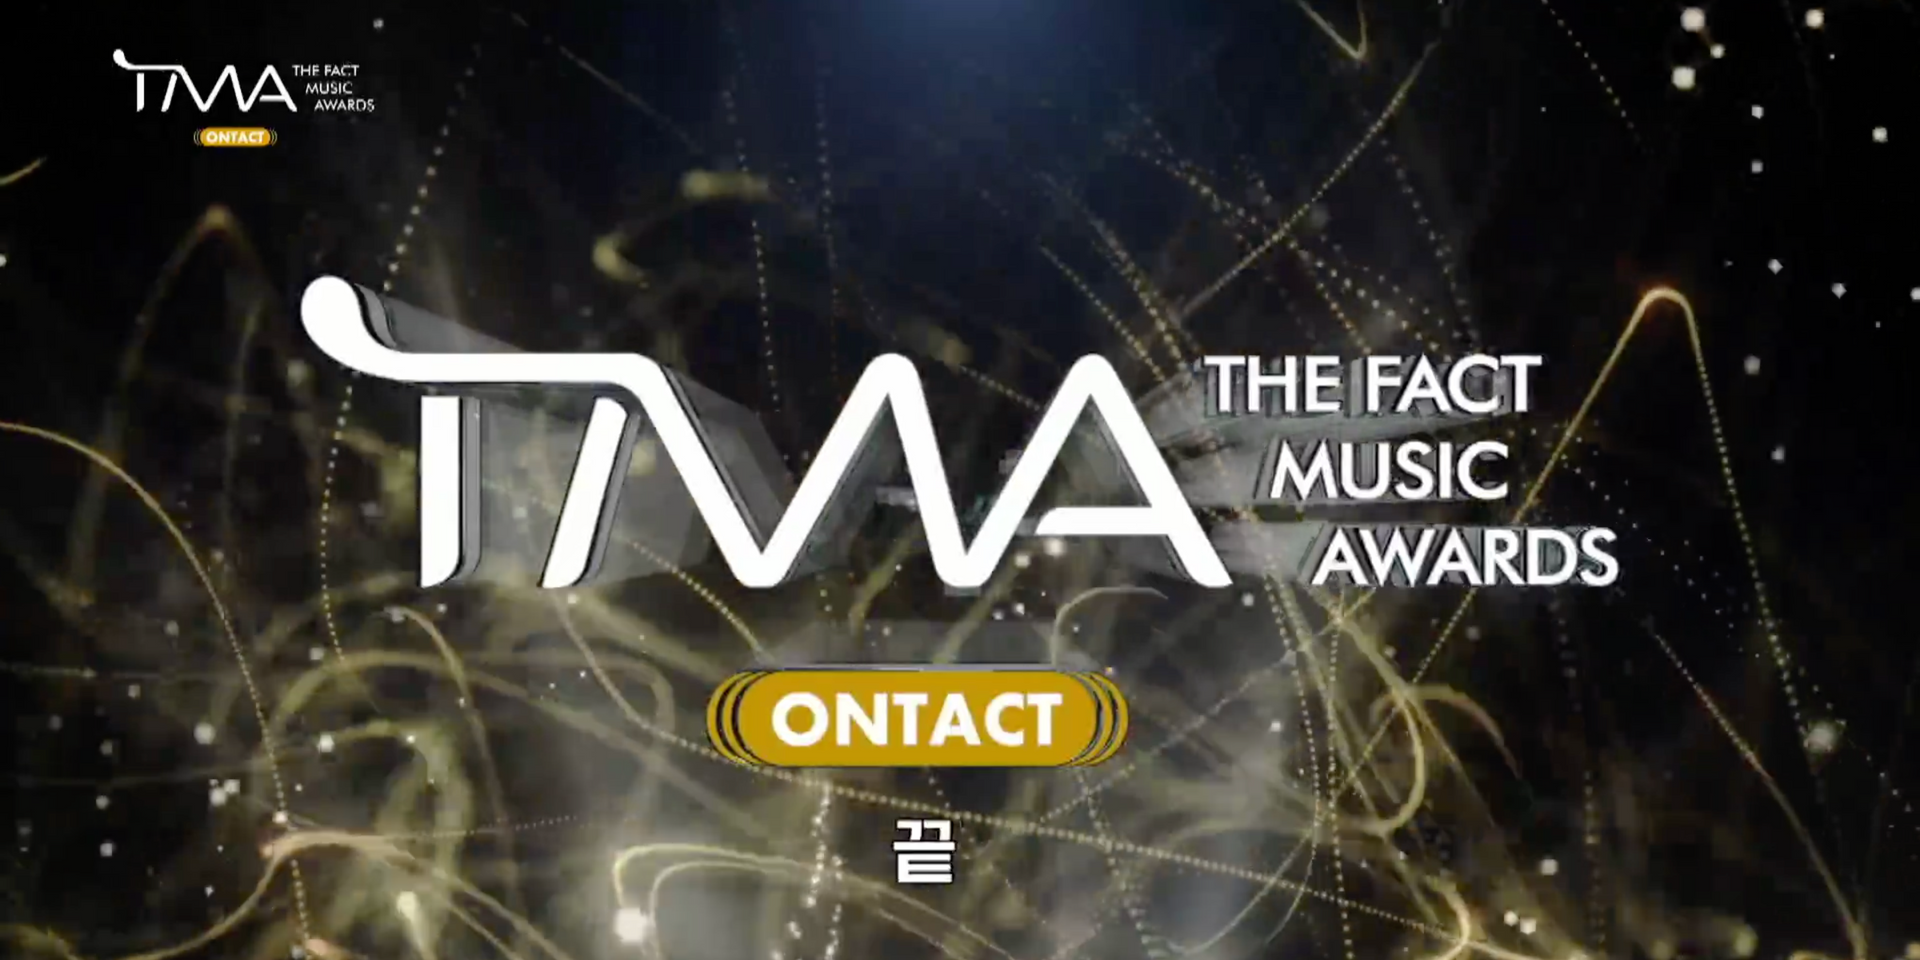 BTS, SUPER JUNIOR, MAMAMOO, TWICE, ITZY, and more win at the 2020 Fact Music Awards – see the list of winners